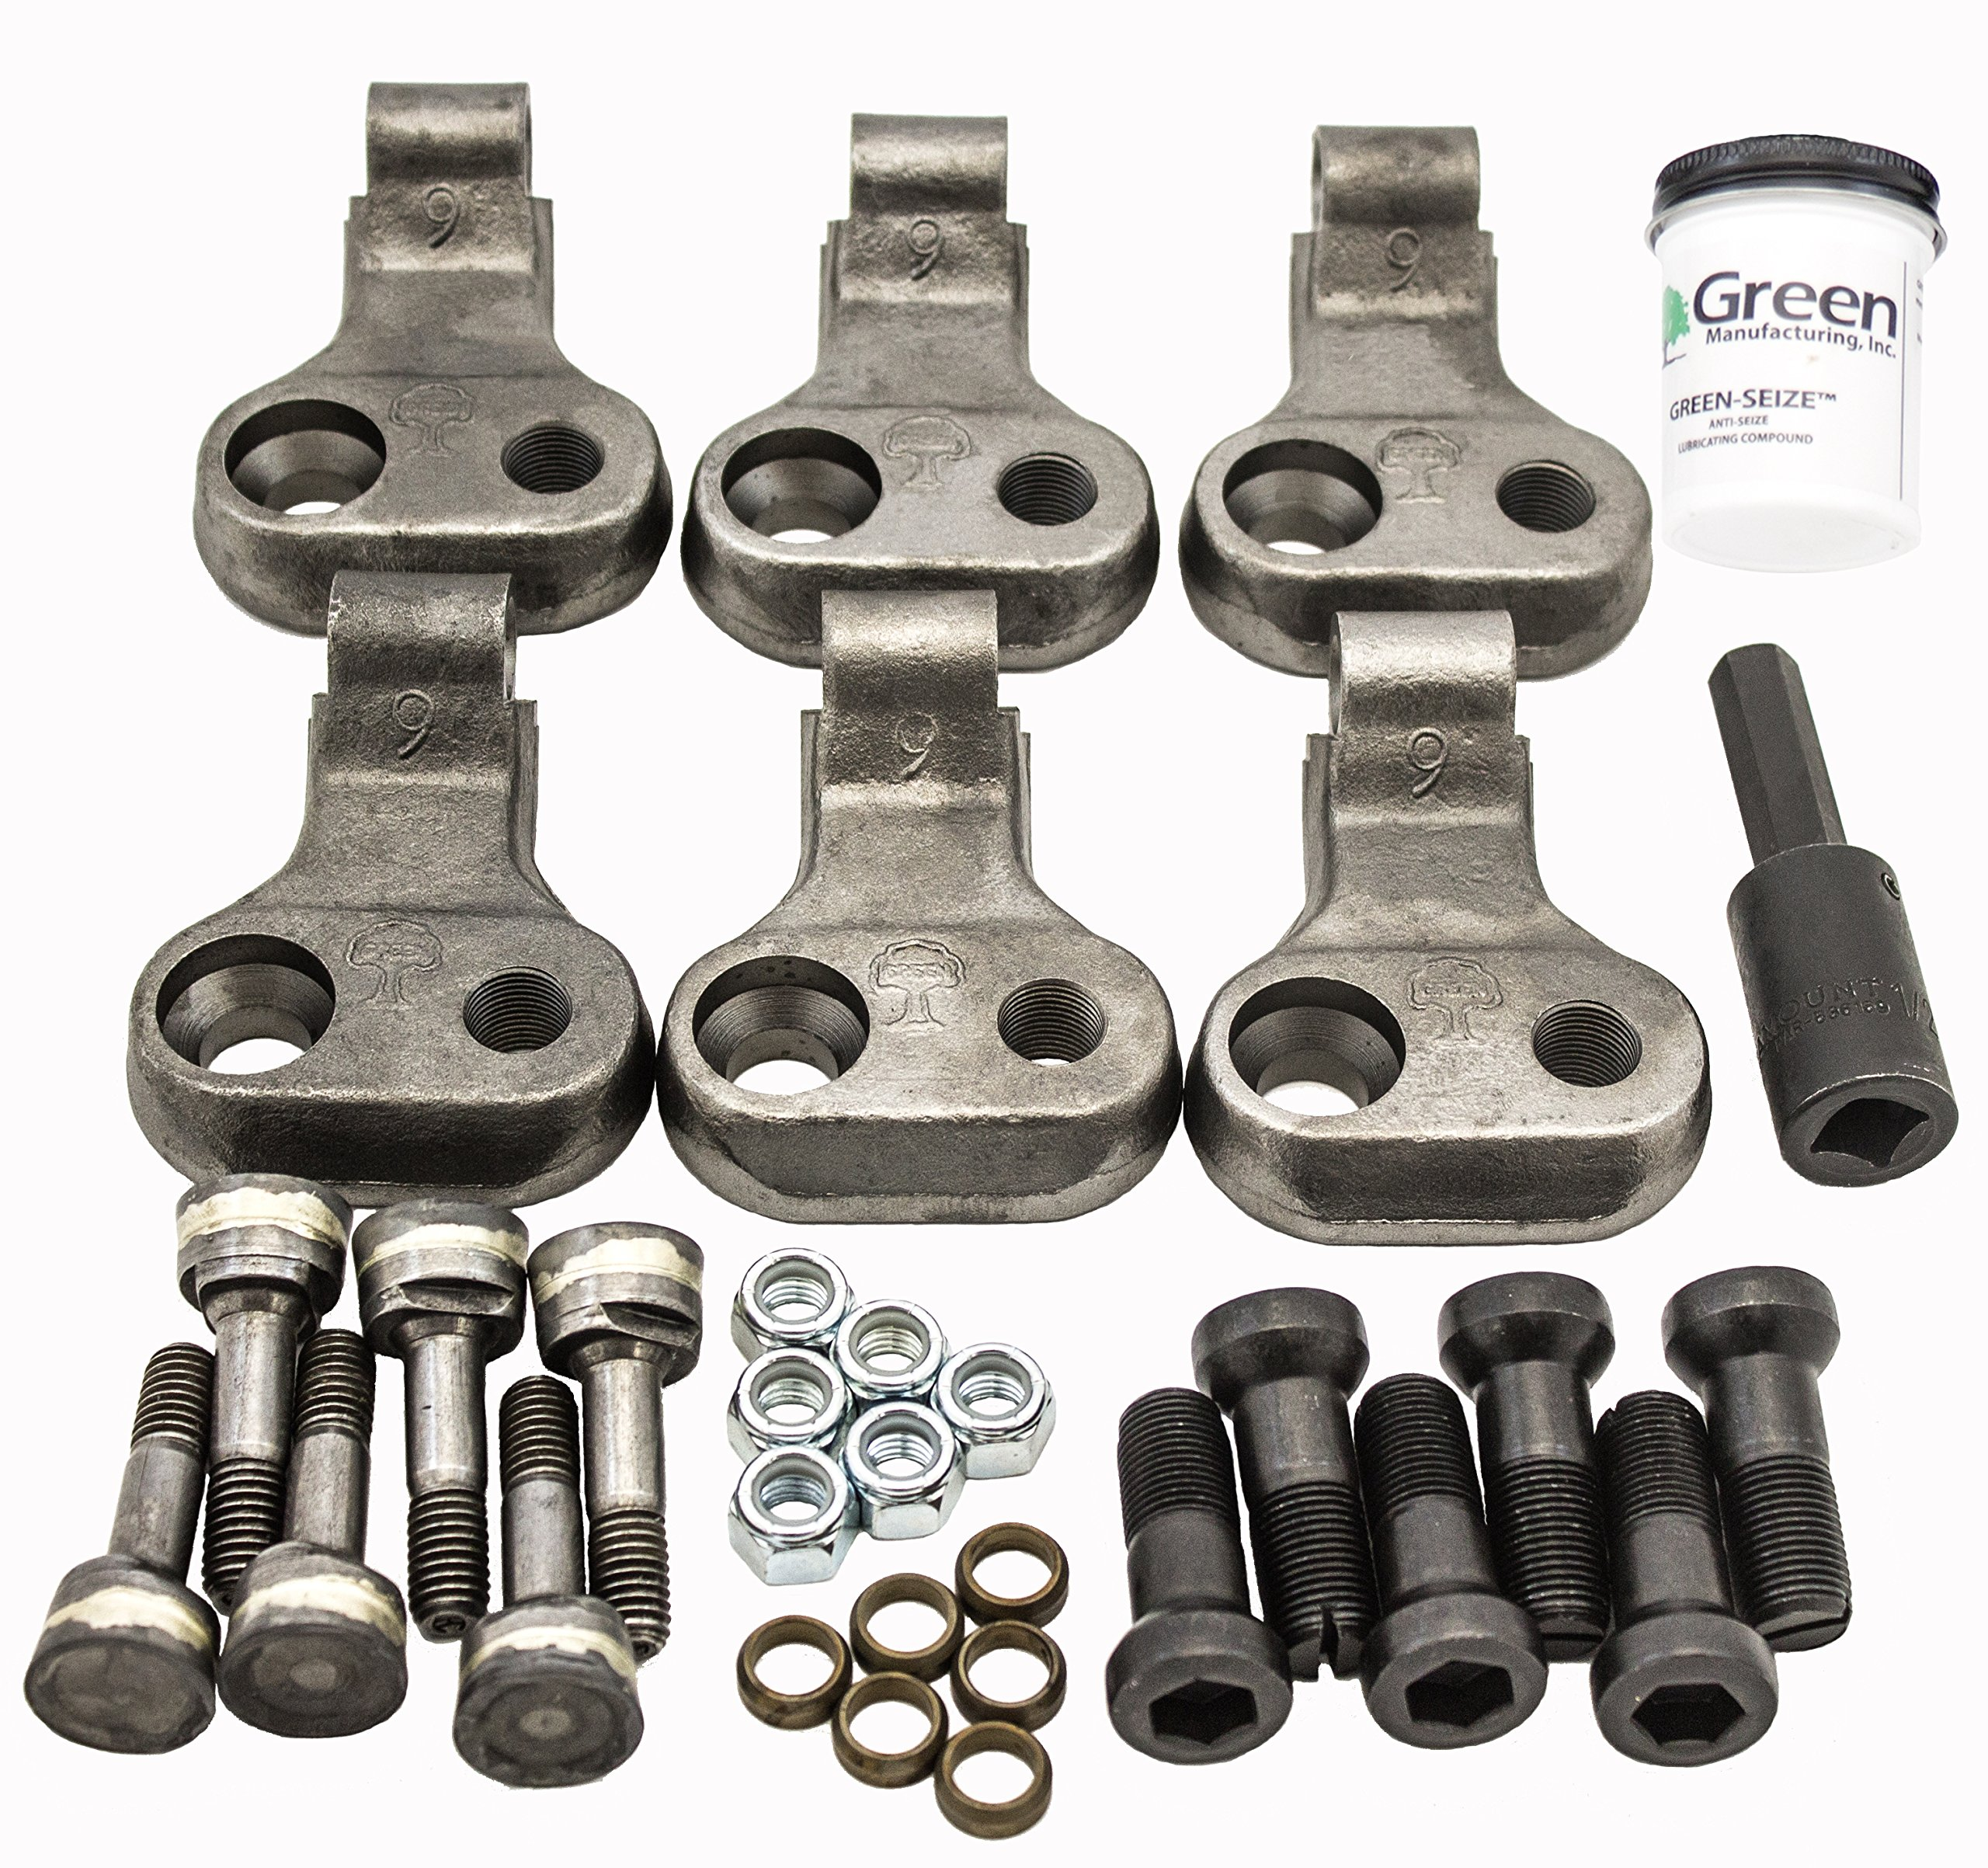 Greenteeth Performance Upgrade Kit for Vermeer SC 252, 292, and 362